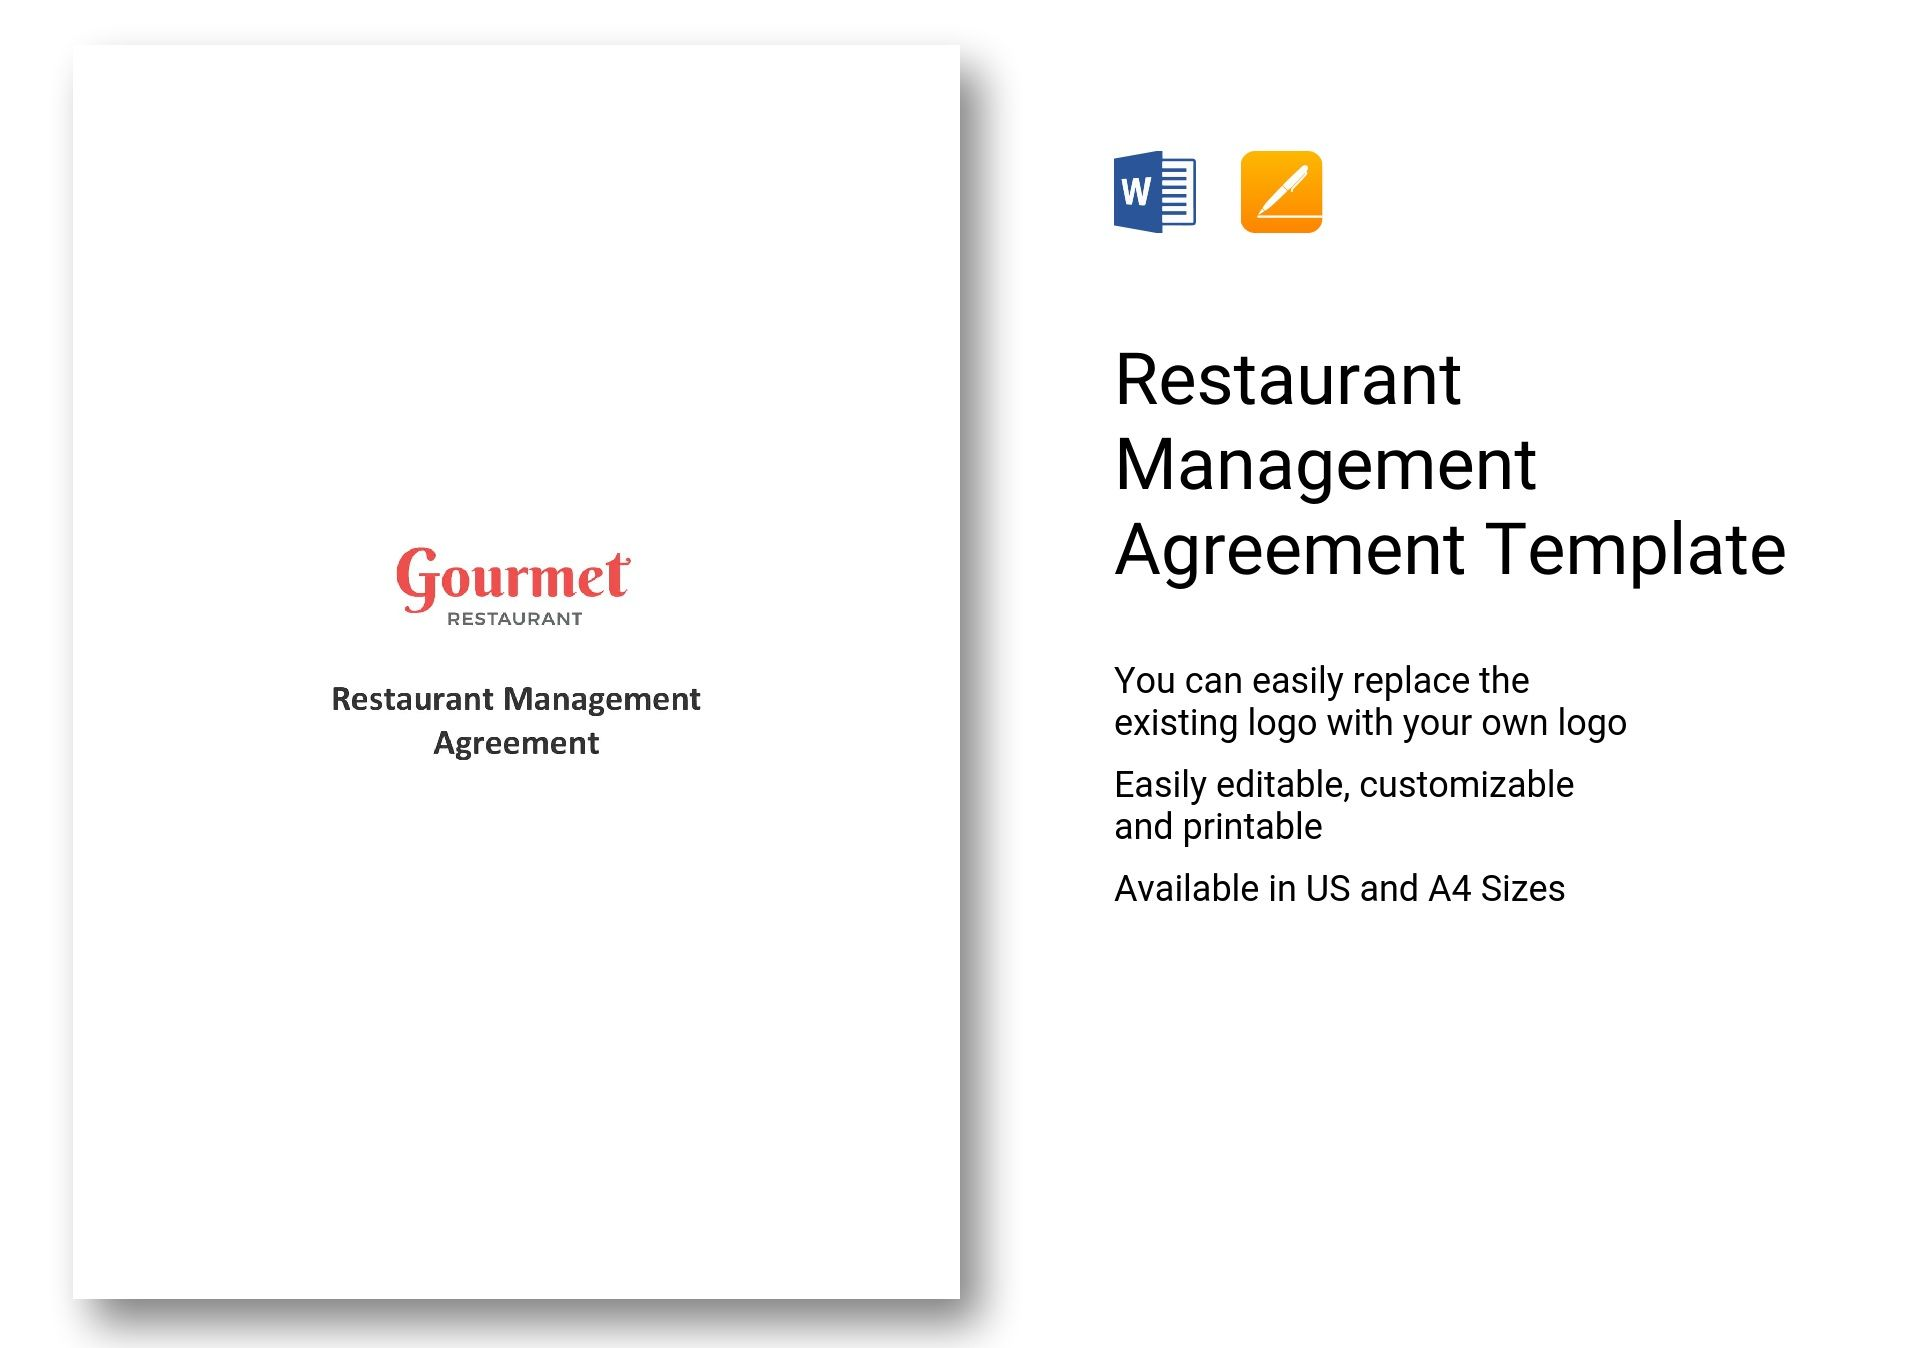 Restaurant Management Agreement Template In Word Pages